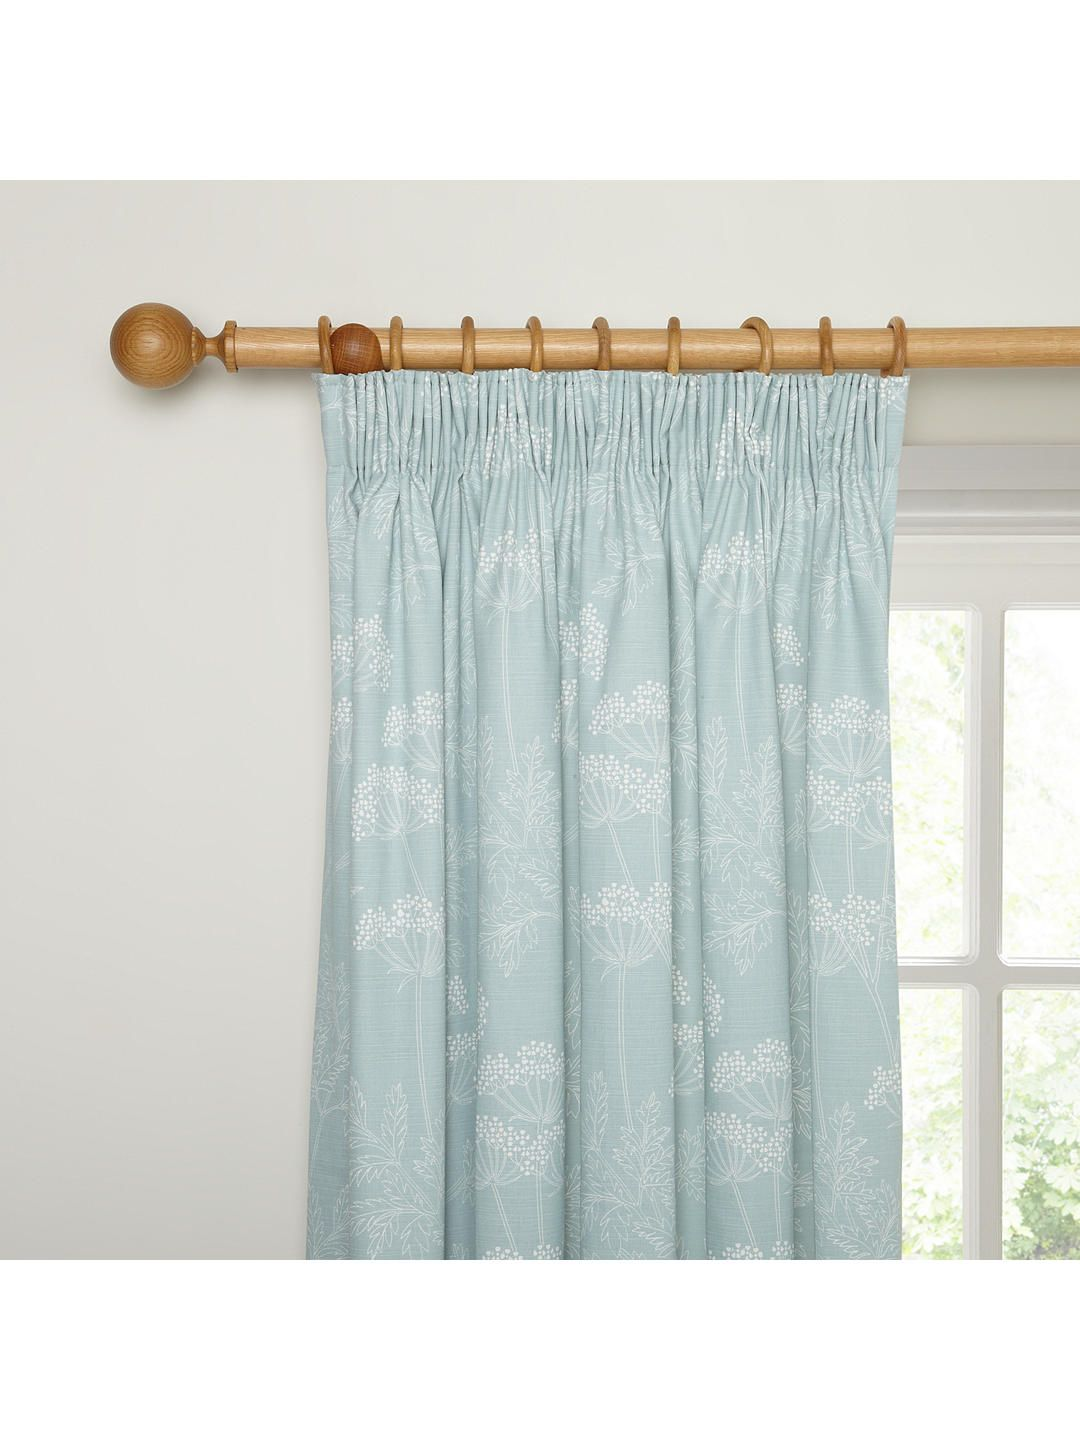 John Lewis Partners Cow Parsley Pair Lined Pencil Pleat Curtains At John Lewis Partners In 2020 Pleated Curtains Pencil Pleat Curtains